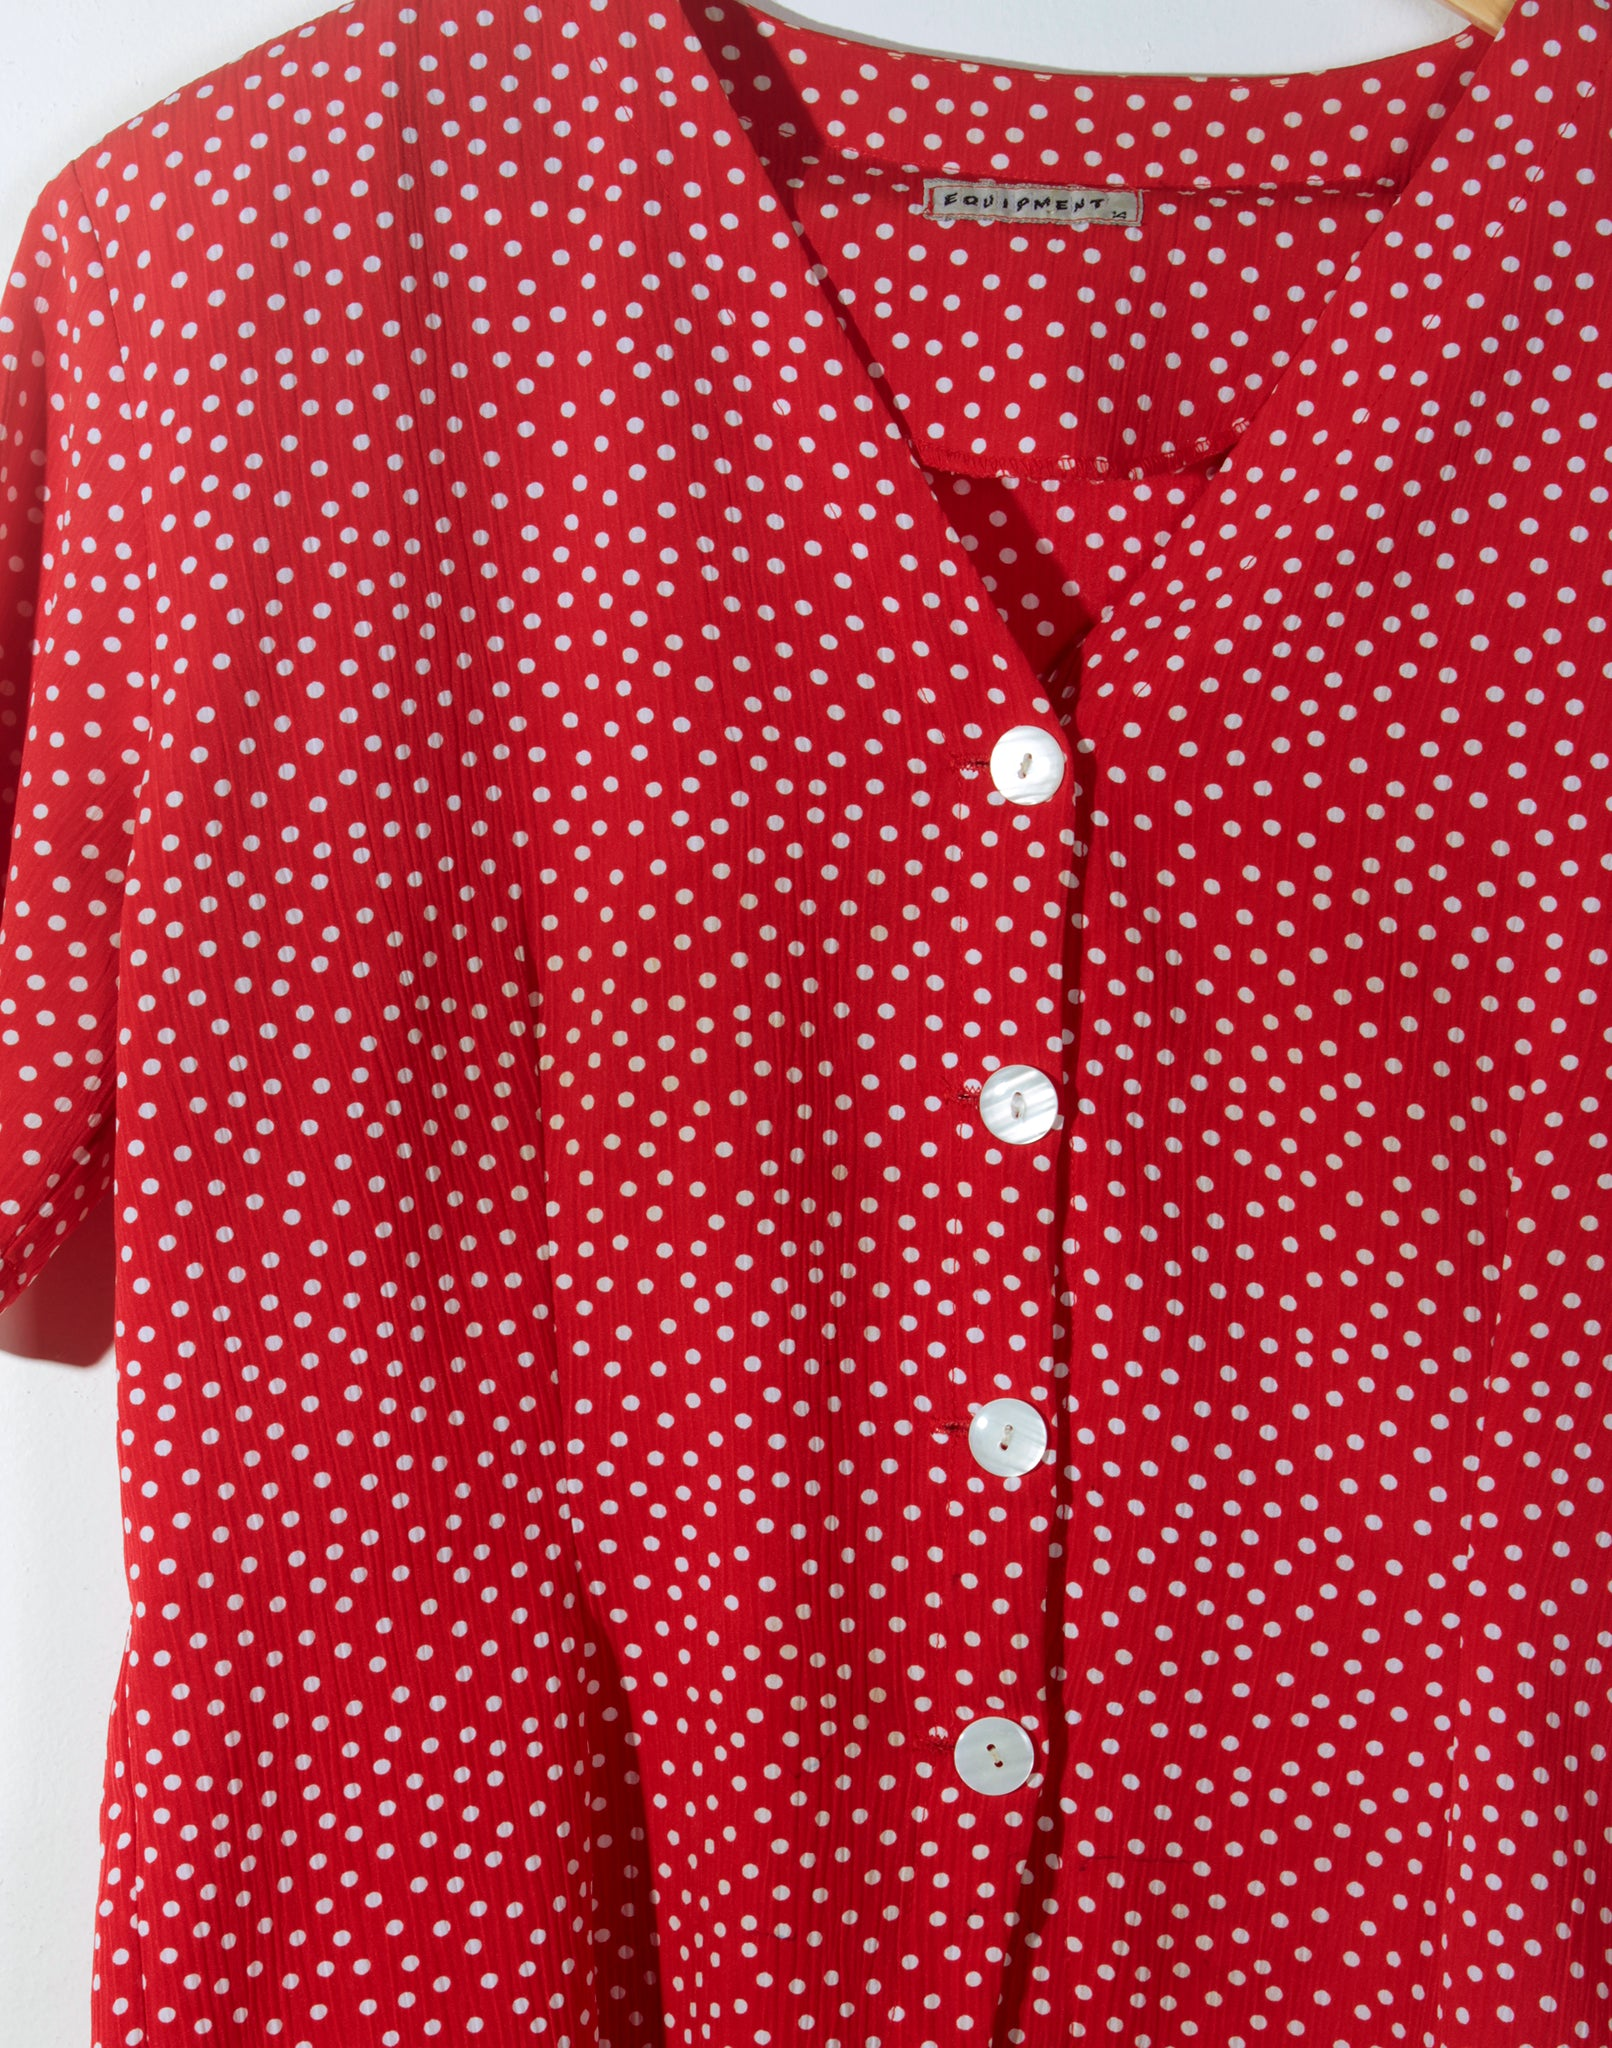 Vintage 80's Red Polka Dot Blouse